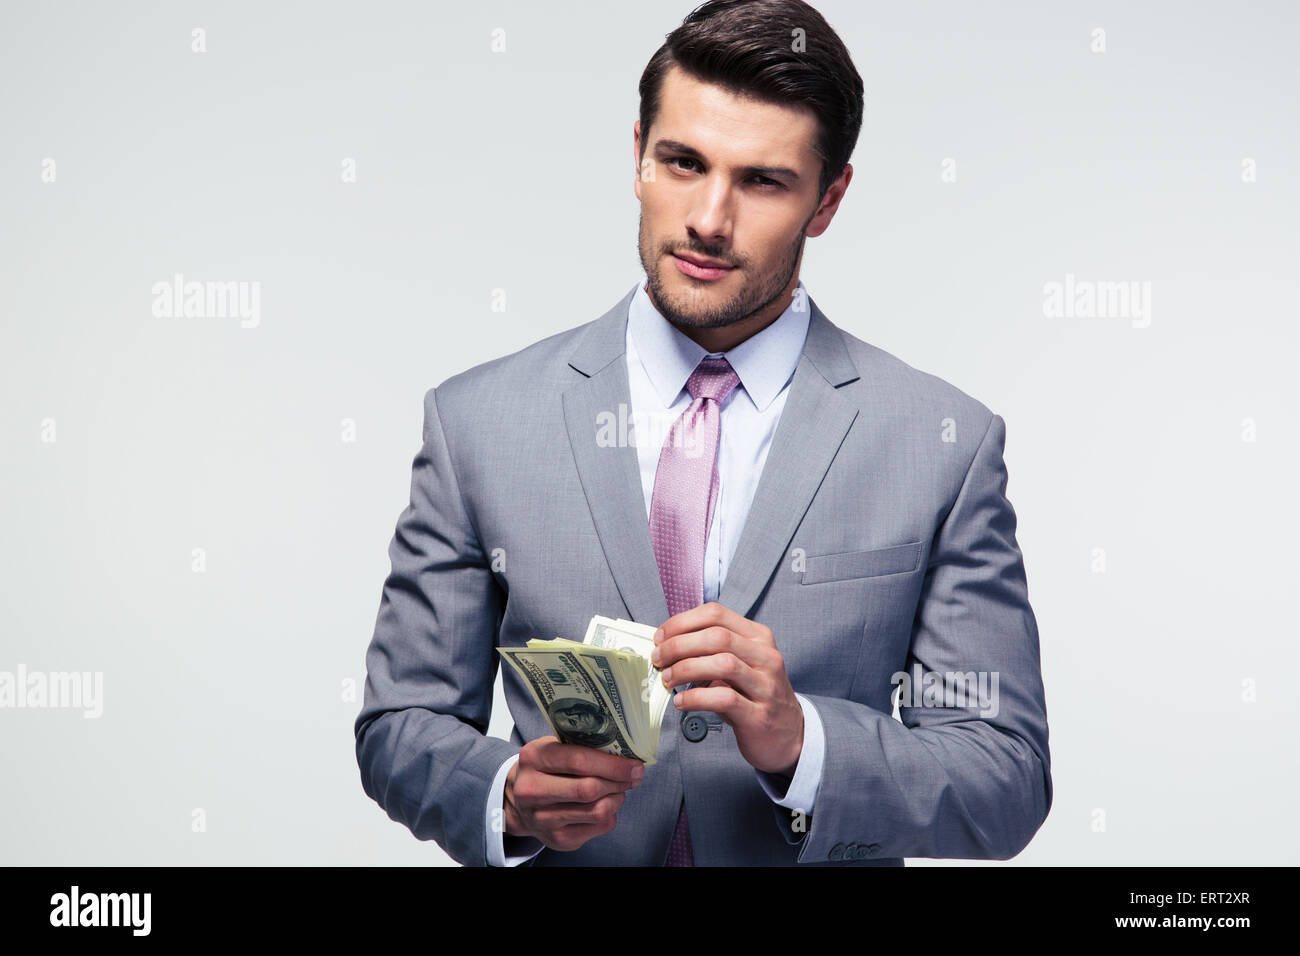 Handsome businessman counting US dollars over gray background and looking at camera - Stock Image